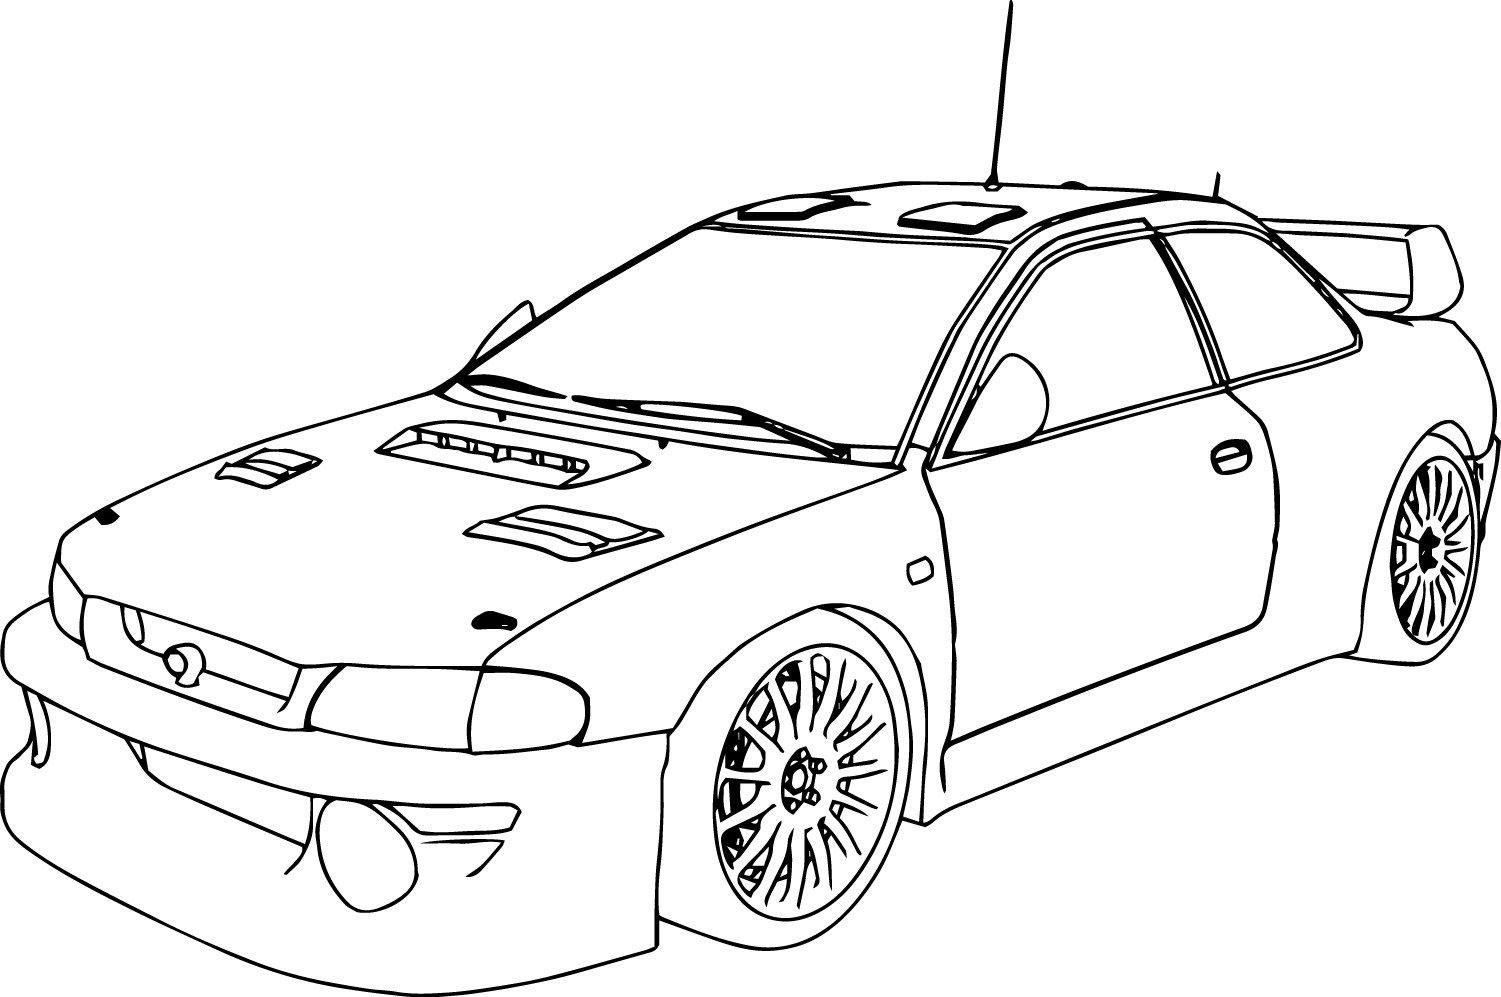 coloring pages cars color in your favorit cars coloring page with some bright coloring cars pages